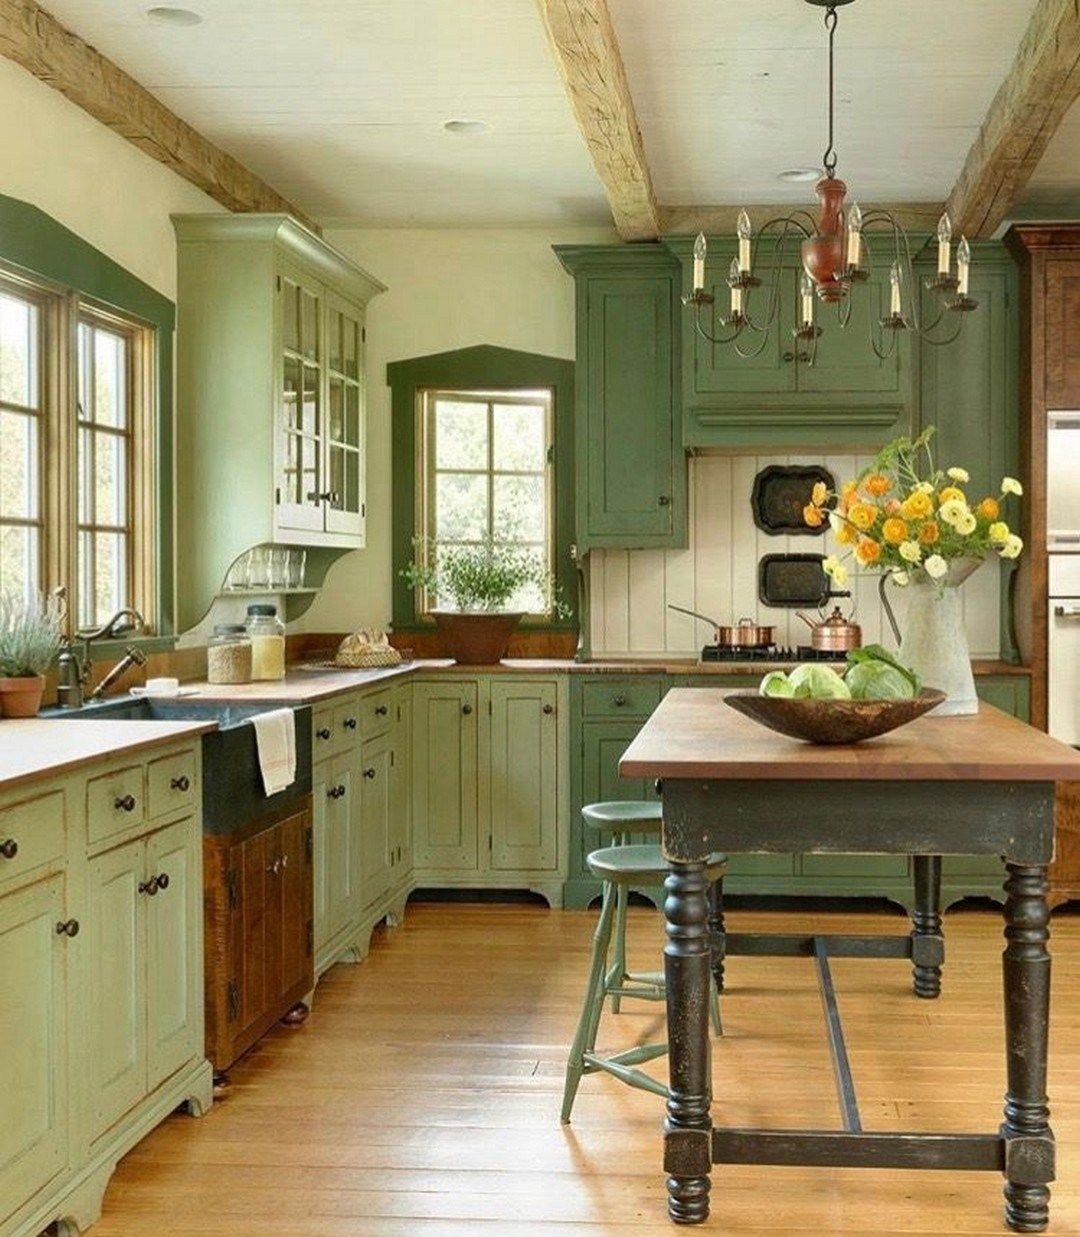 Green Kitchen Cabinets: 31 Popular Green Kitchen Cabinet Colors Ideas (11) In 2019